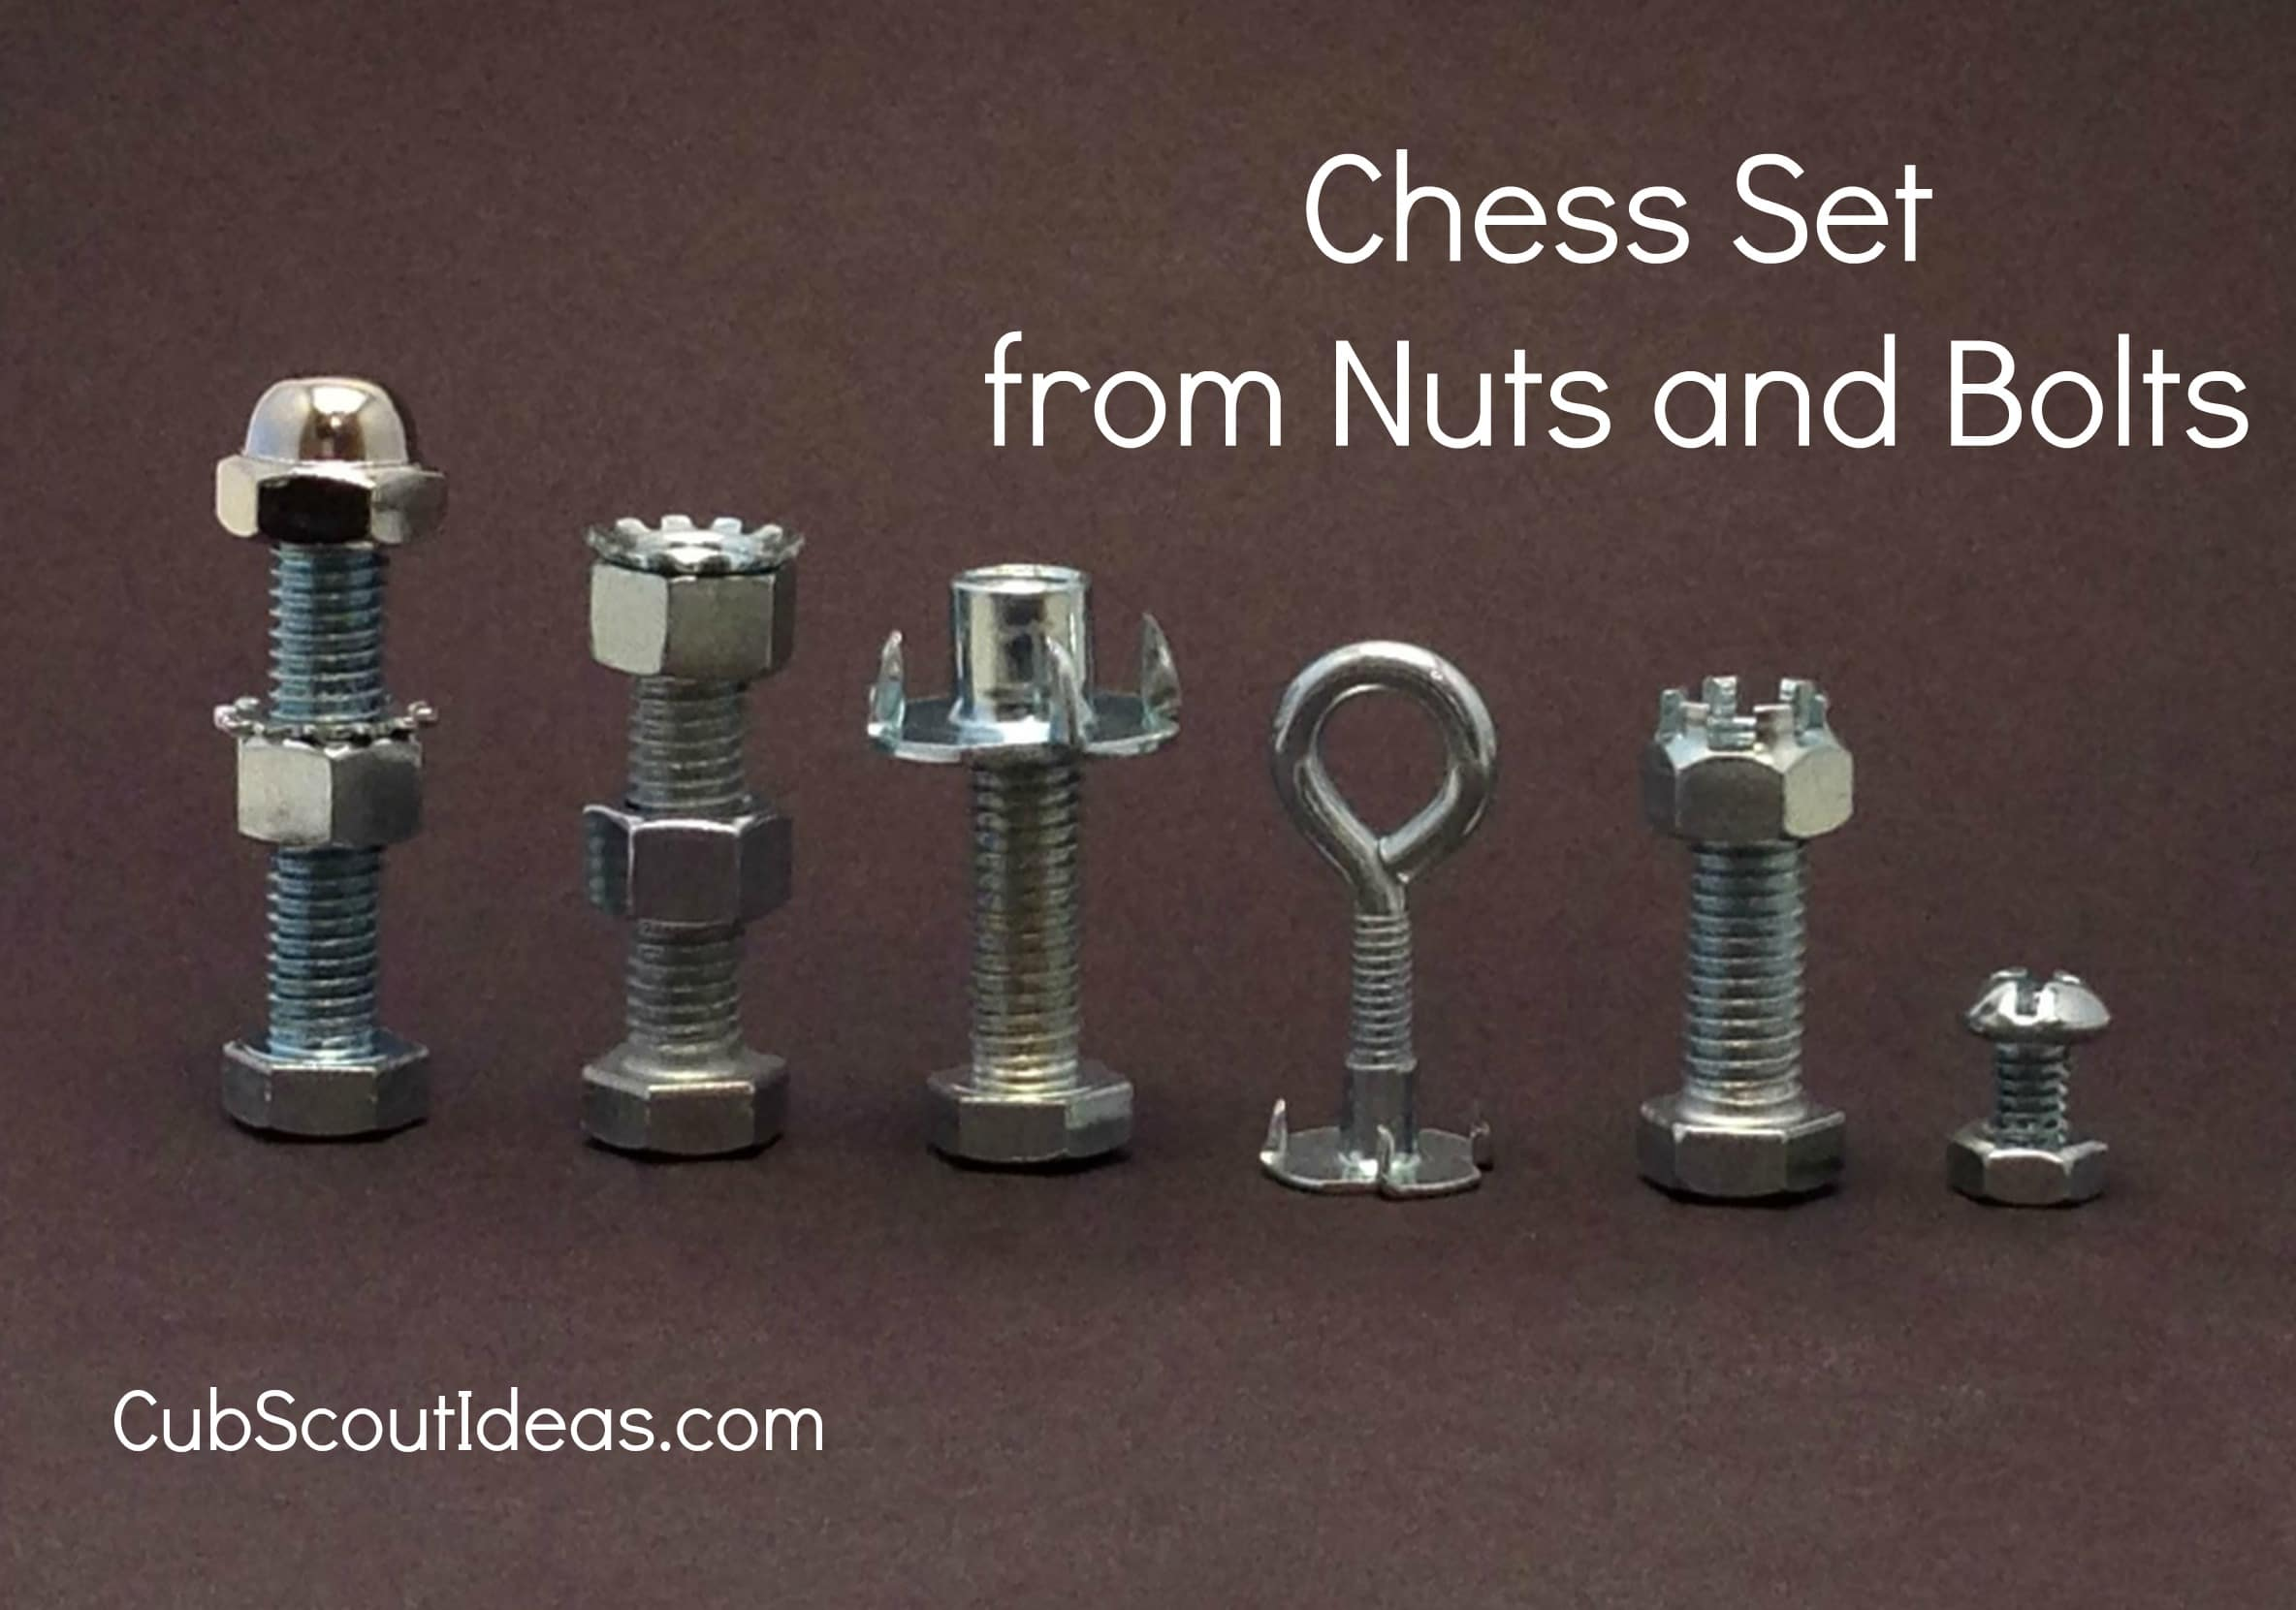 cub scout chess with nuts and bolt